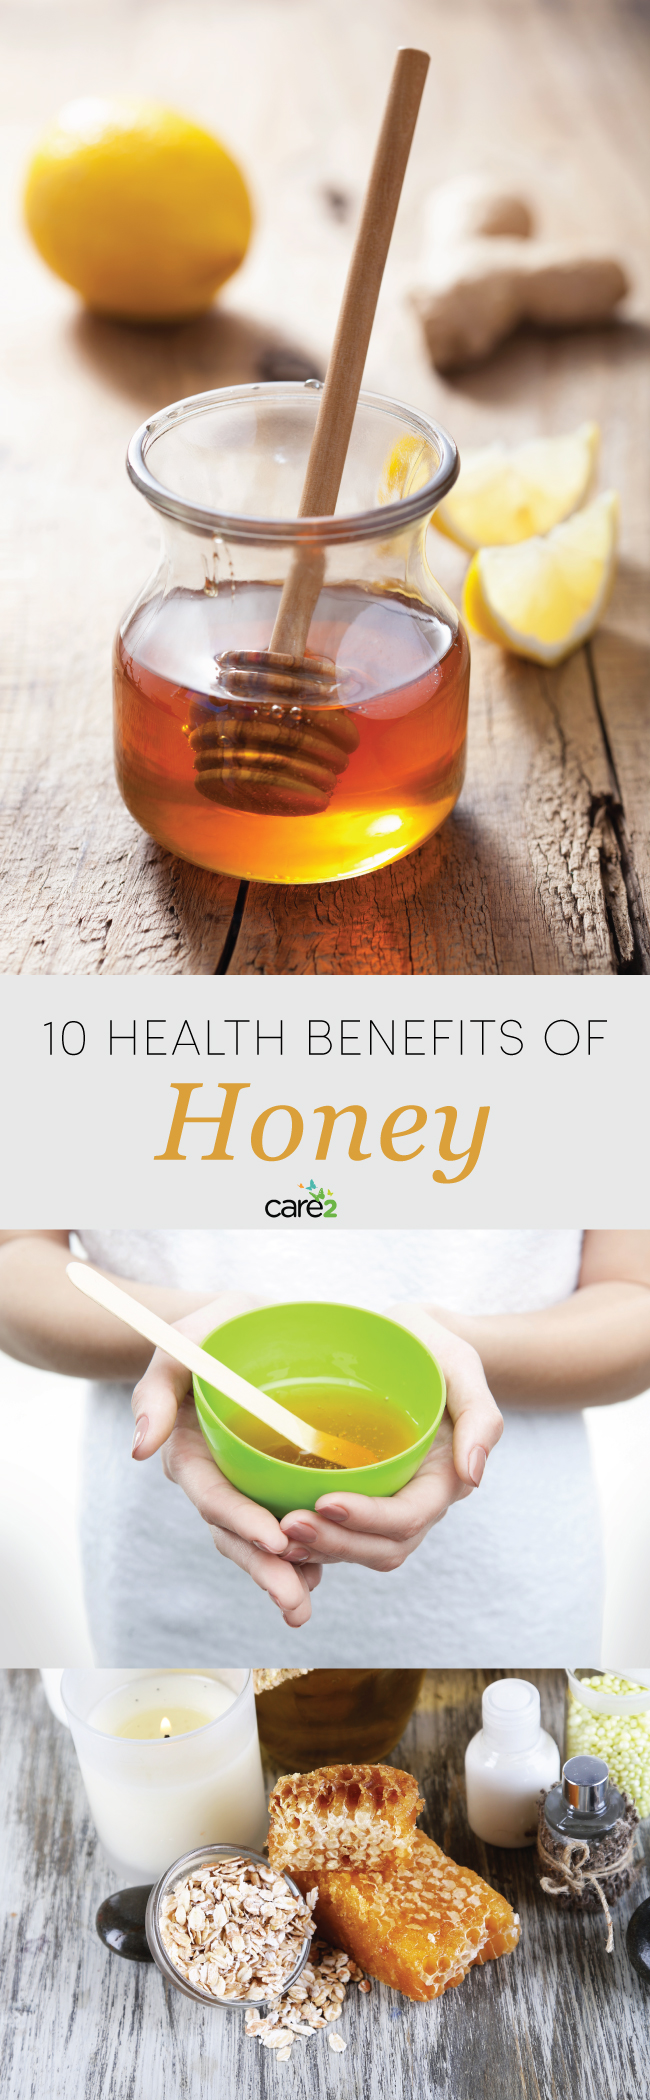 10 Health Benefits of Honey